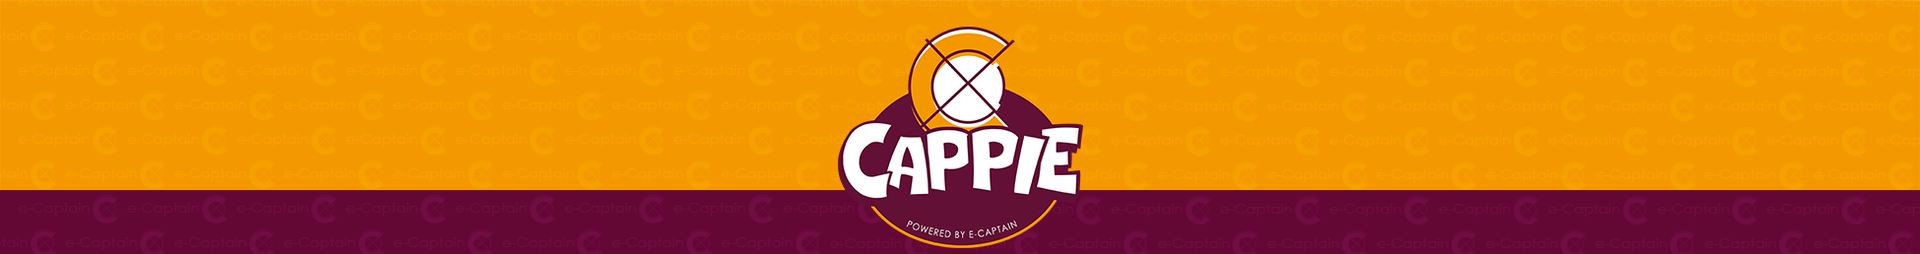 cappie-header-v1